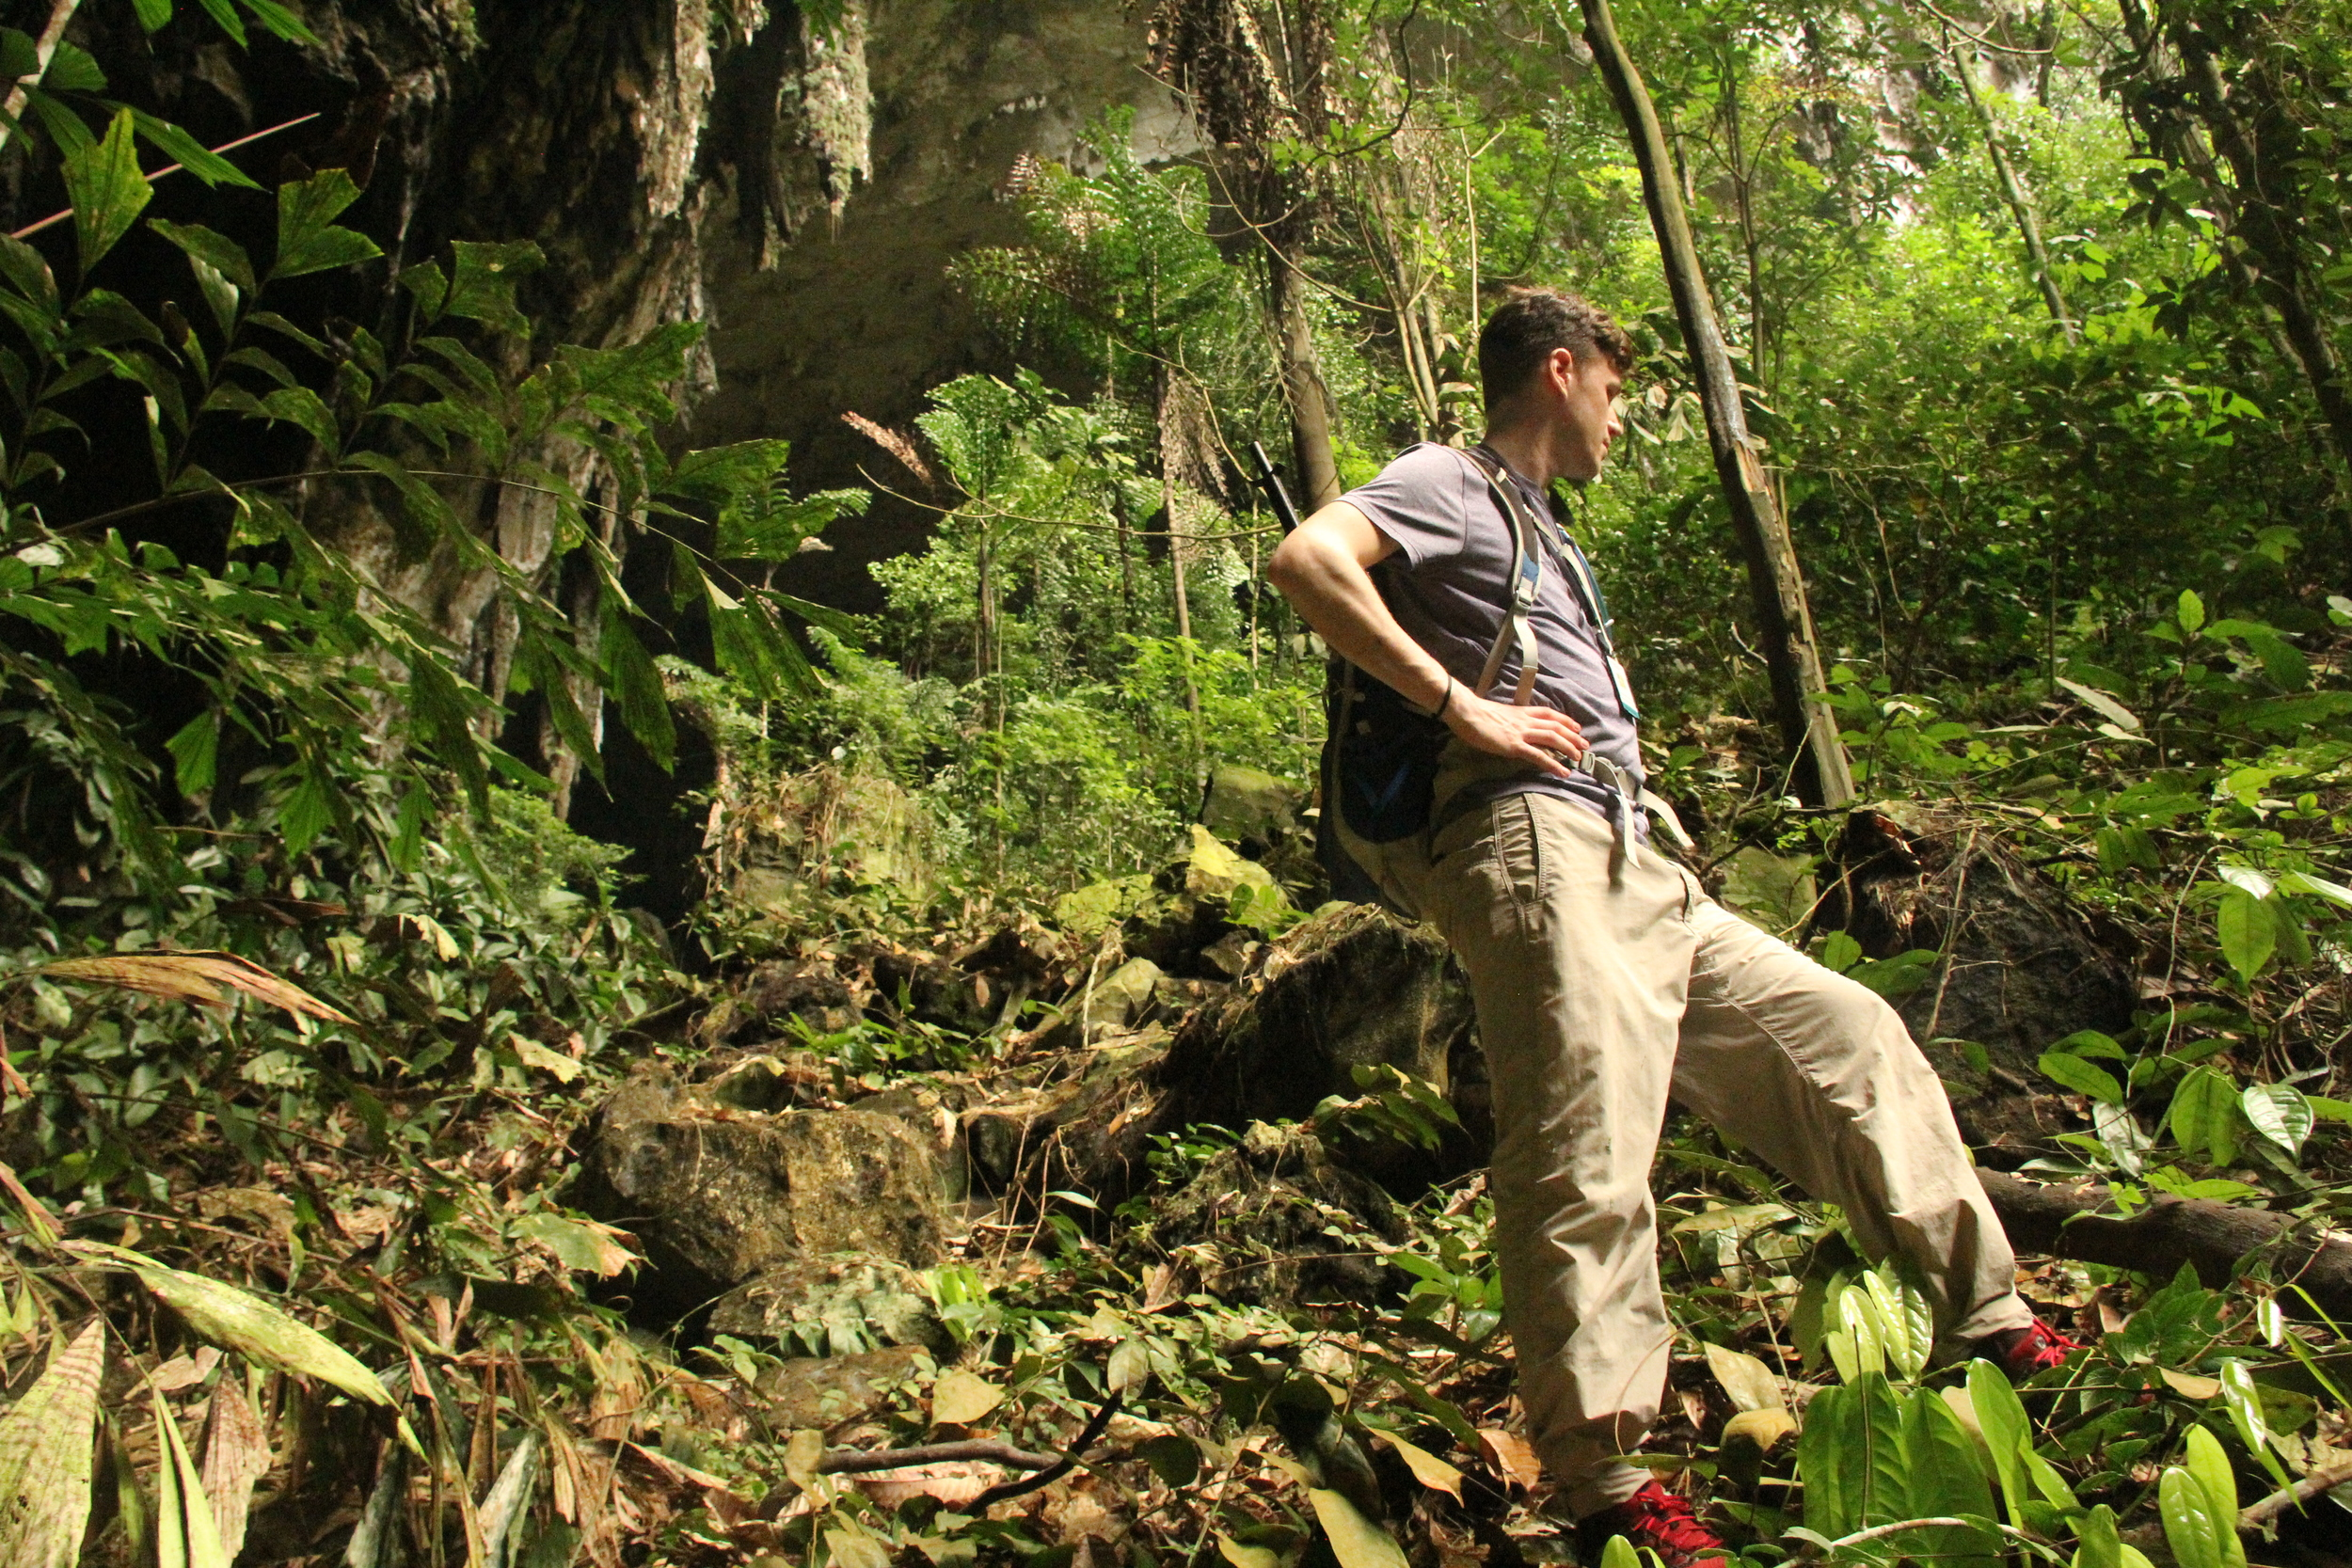 your intrepid explorer regally staring into space outside of Deer Cave, Mulu National Park. We were waiting for the sun to piss off so the bats would come out of the cave, and we could go looking for geckos without getting peed on. photo credit: Jackie Childers